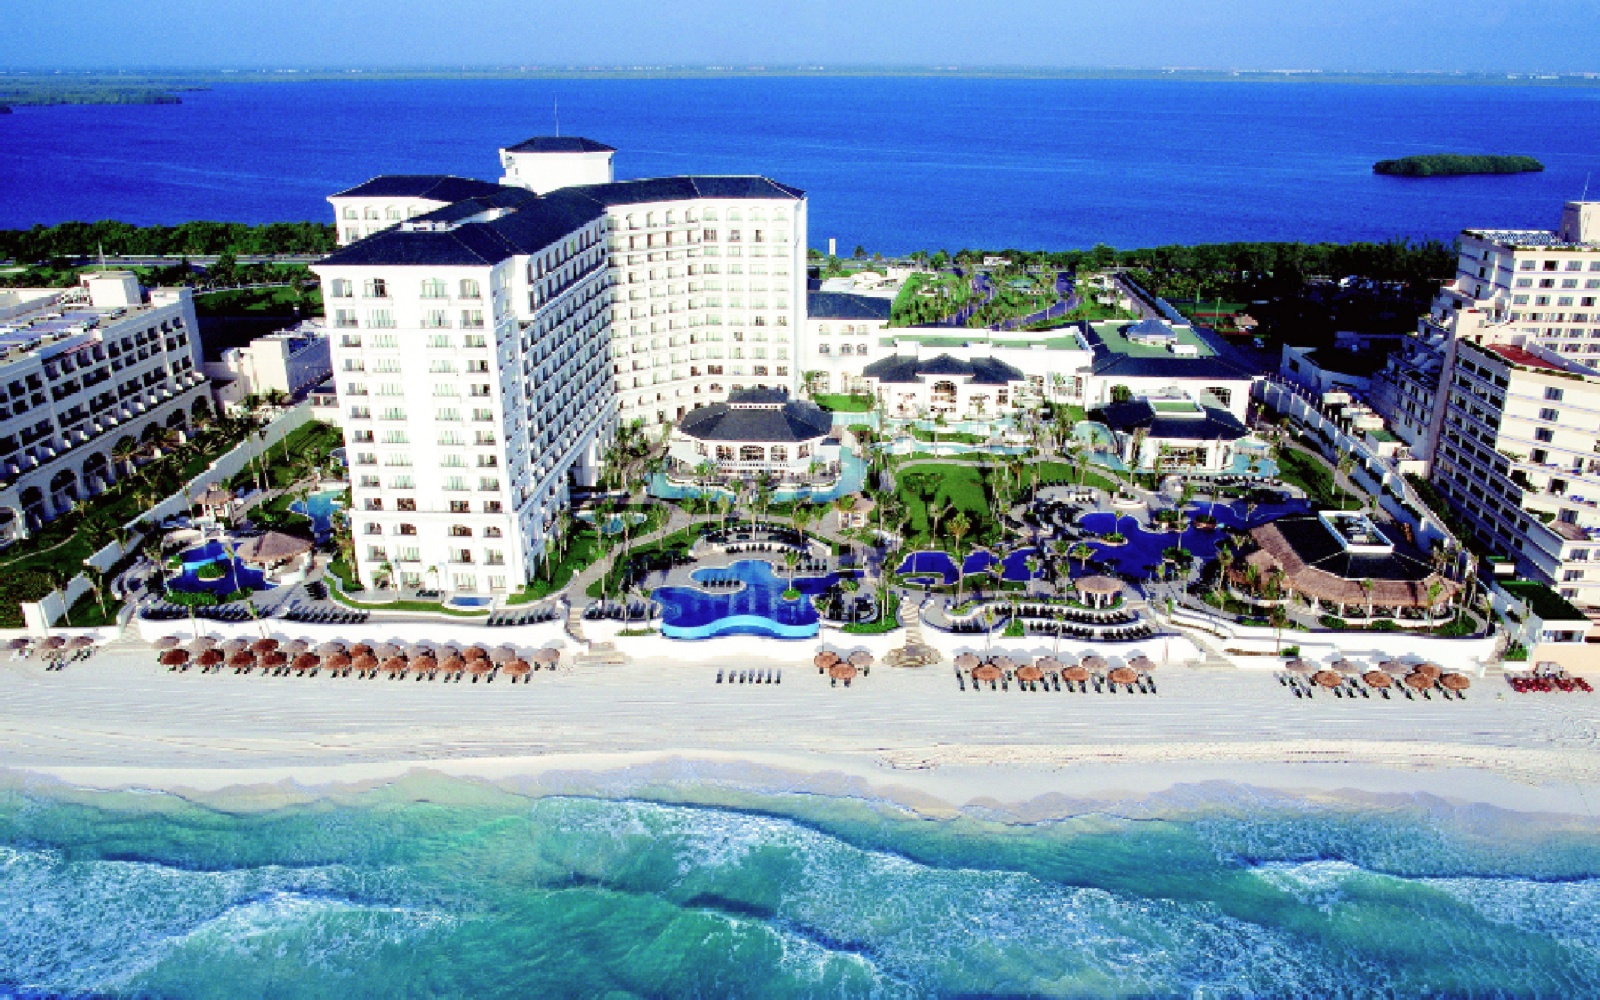 JW Marriott Cancún Resort & Spa on the beach, Mexico